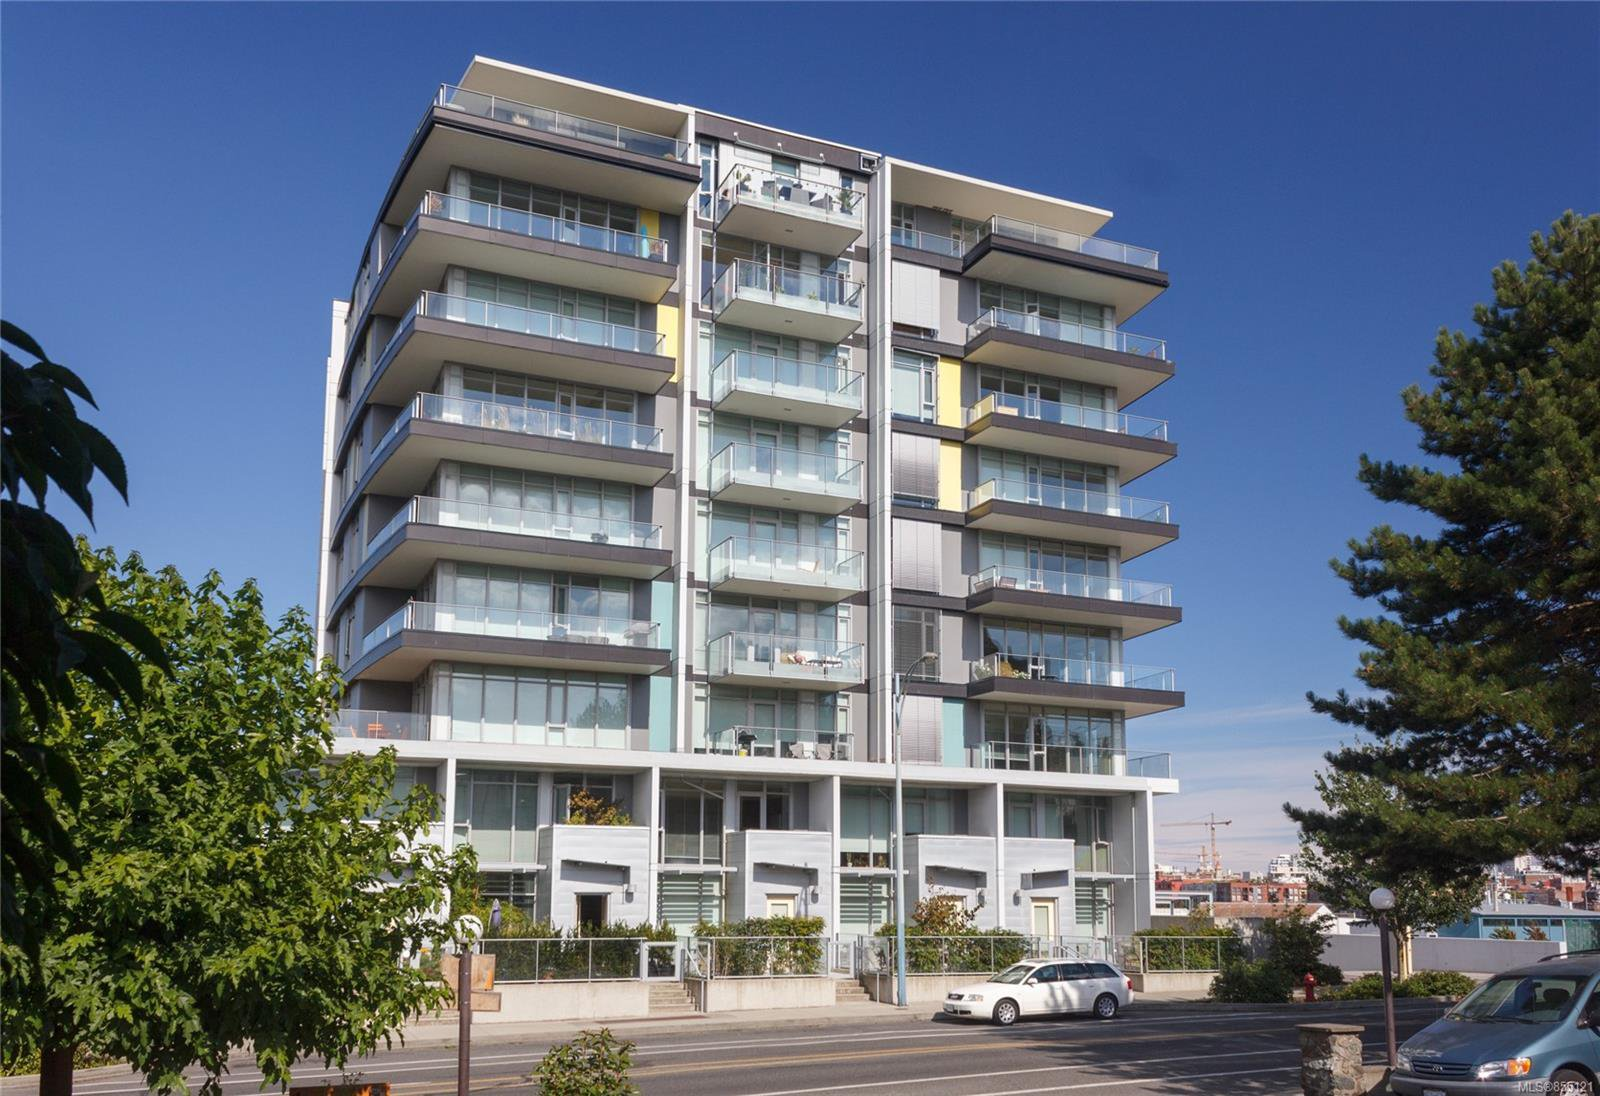 Main Photo: 504 373 Tyee Rd in : VW Victoria West Condo Apartment for sale (Victoria West)  : MLS®# 855121